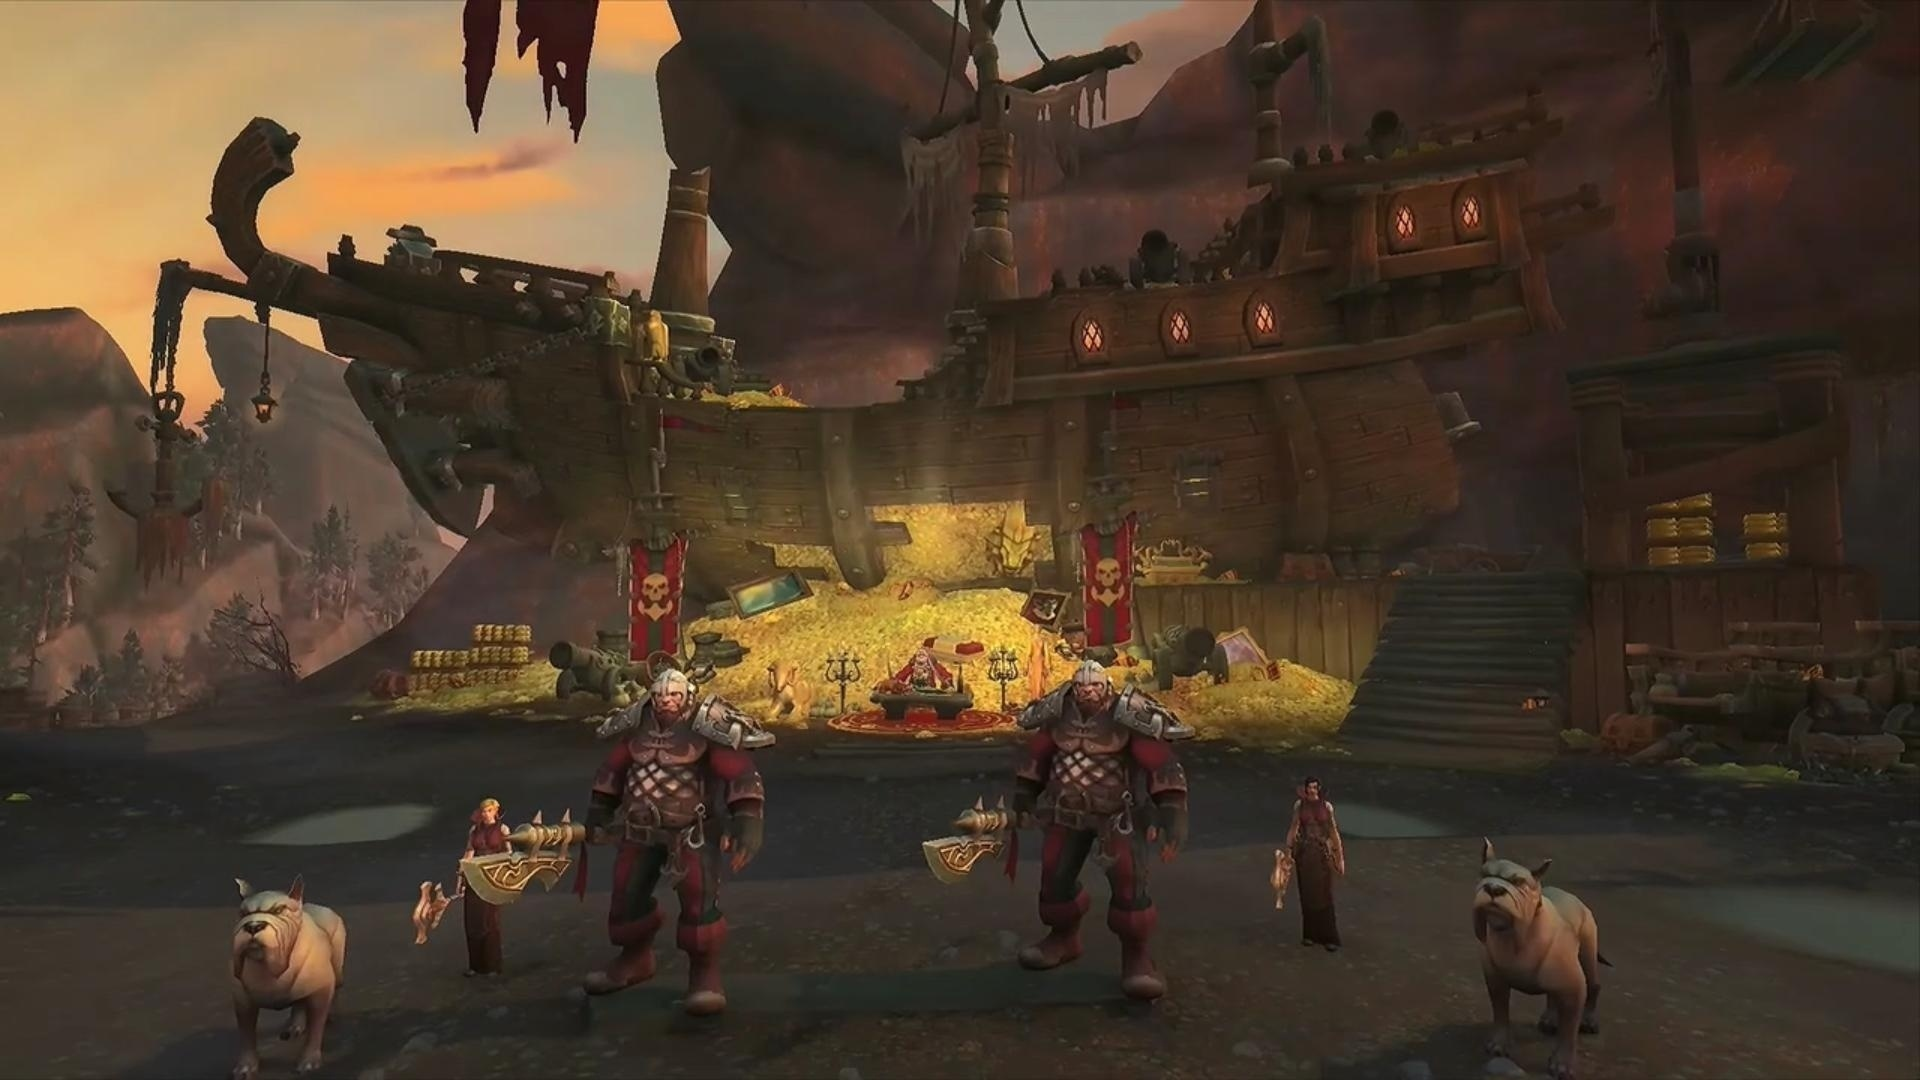 Battle For Azeroth Dungeons At Blizzcon 2017 Freehold And